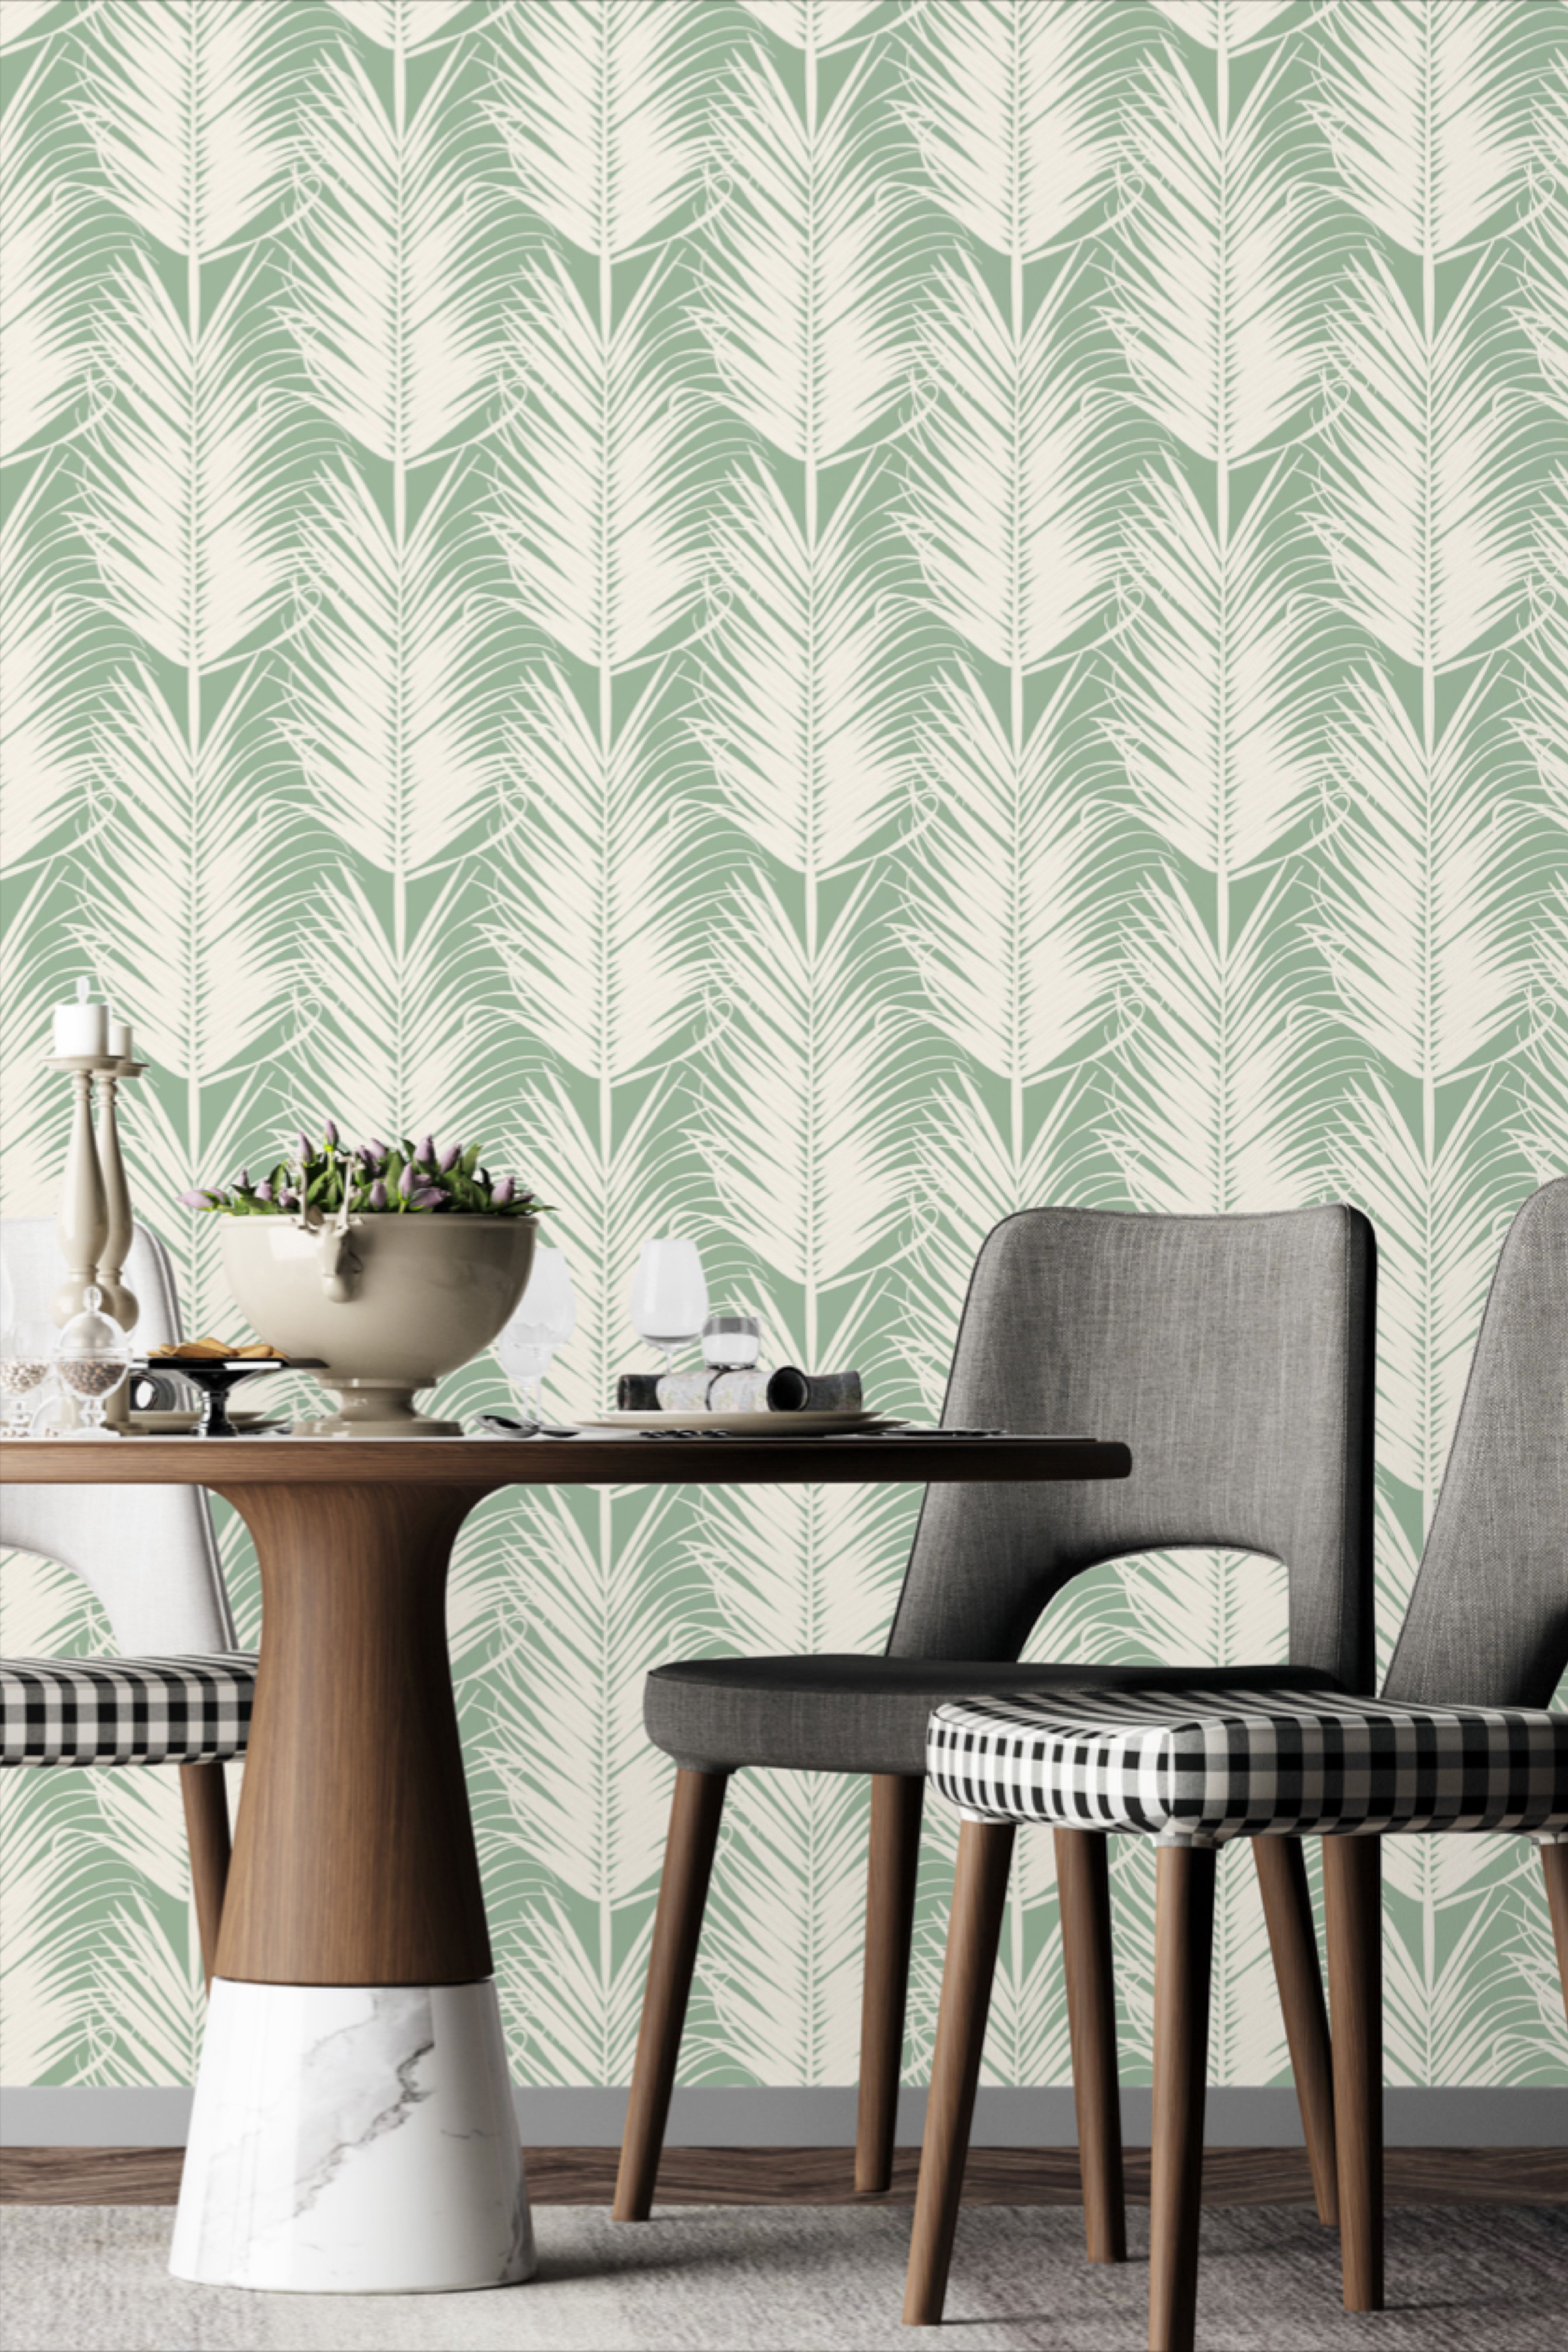 Sage Green Feather Wallpaper Peel And Stick Green Feathery Palm Self Adhesive Wall Mural Botanical Leaves Wall Covering In 2020 Green Walls Living Room Sage Green Living Room Living Room Green